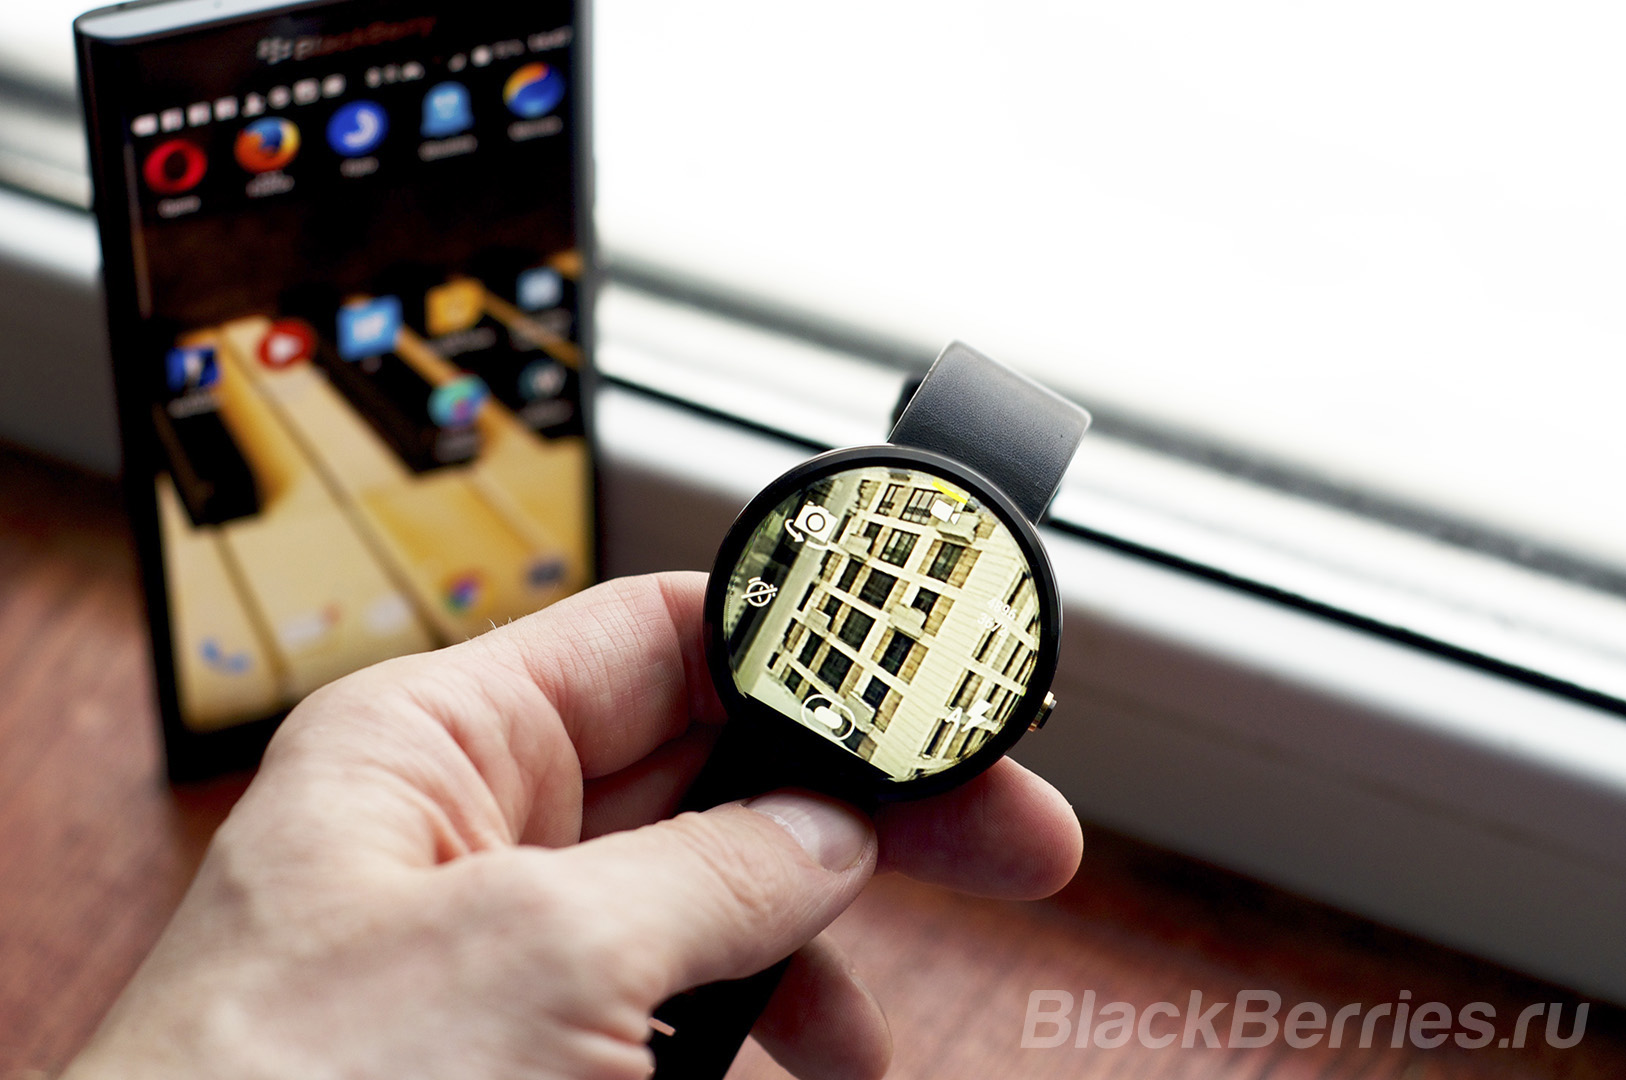 BlackBerry-Priv-Android-Wear-10